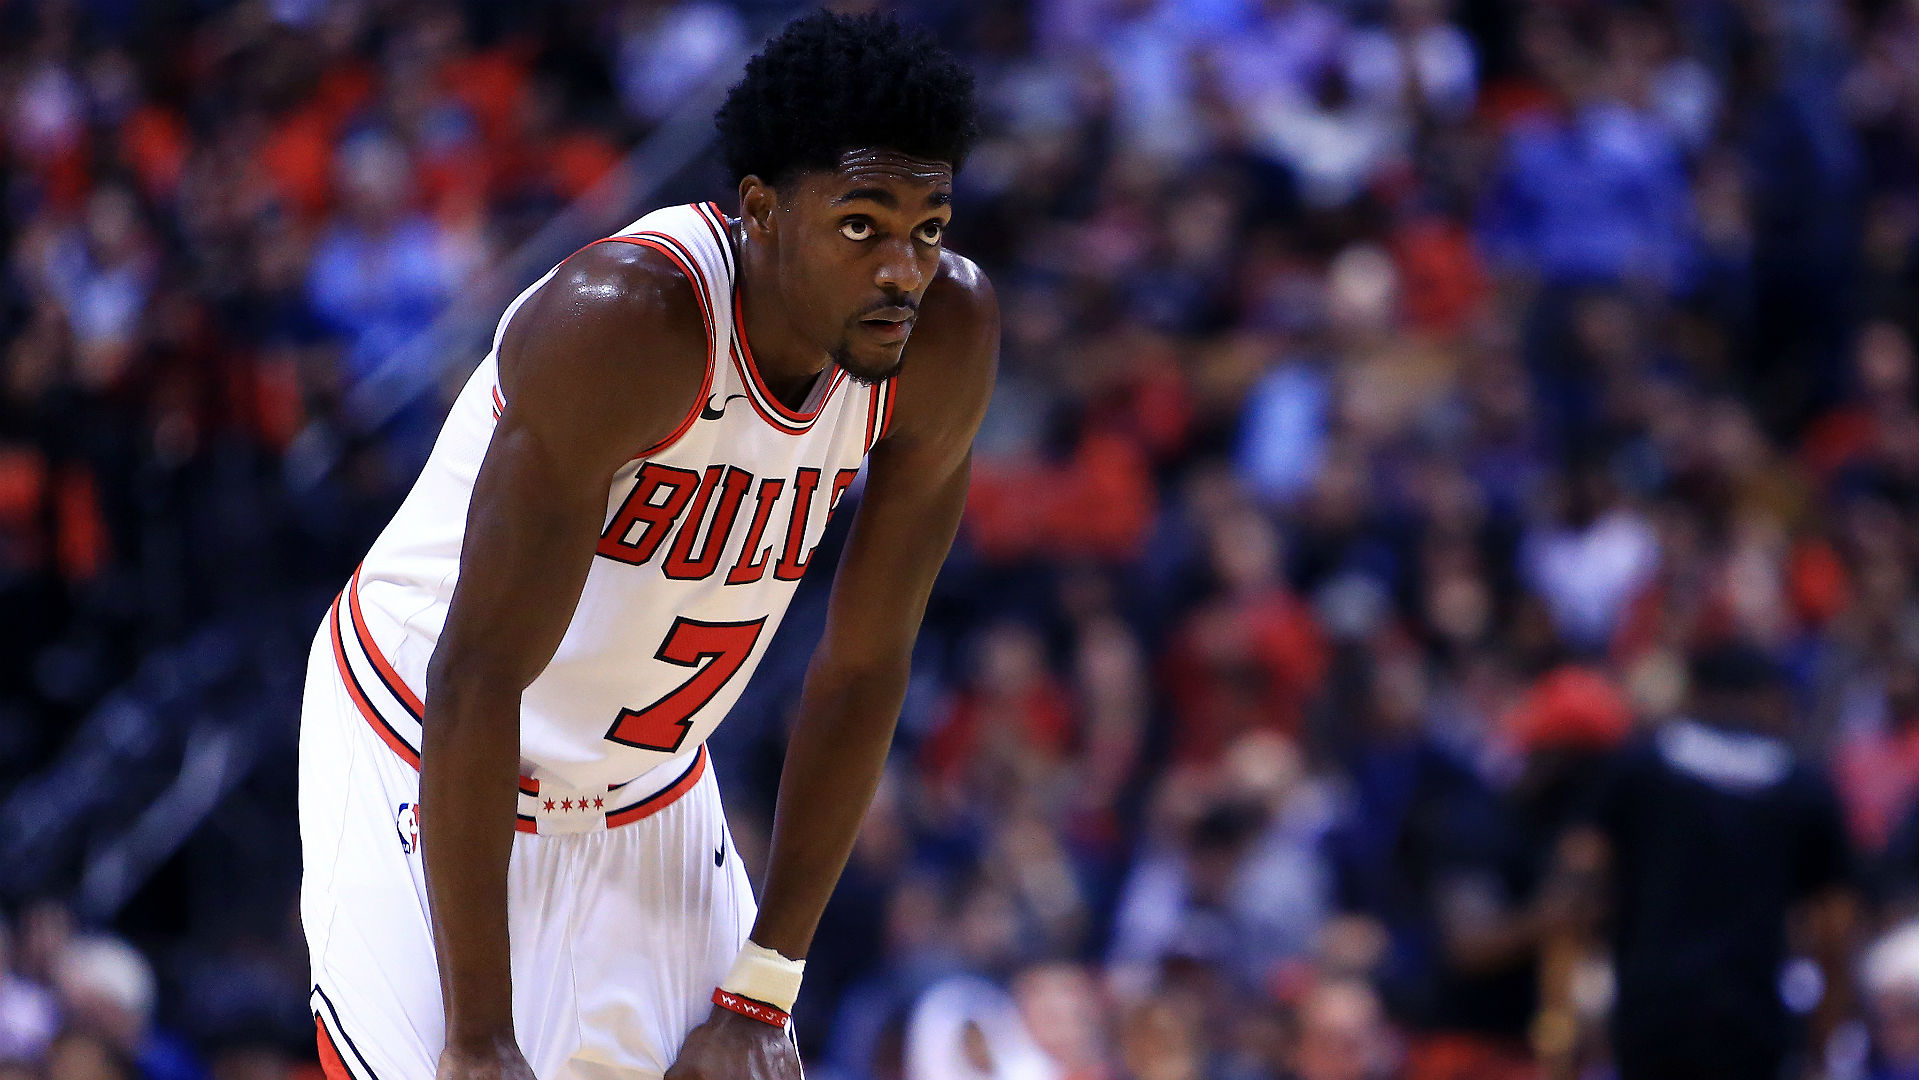 Bulls trade Justin Holiday to the Memphis Grizzlies